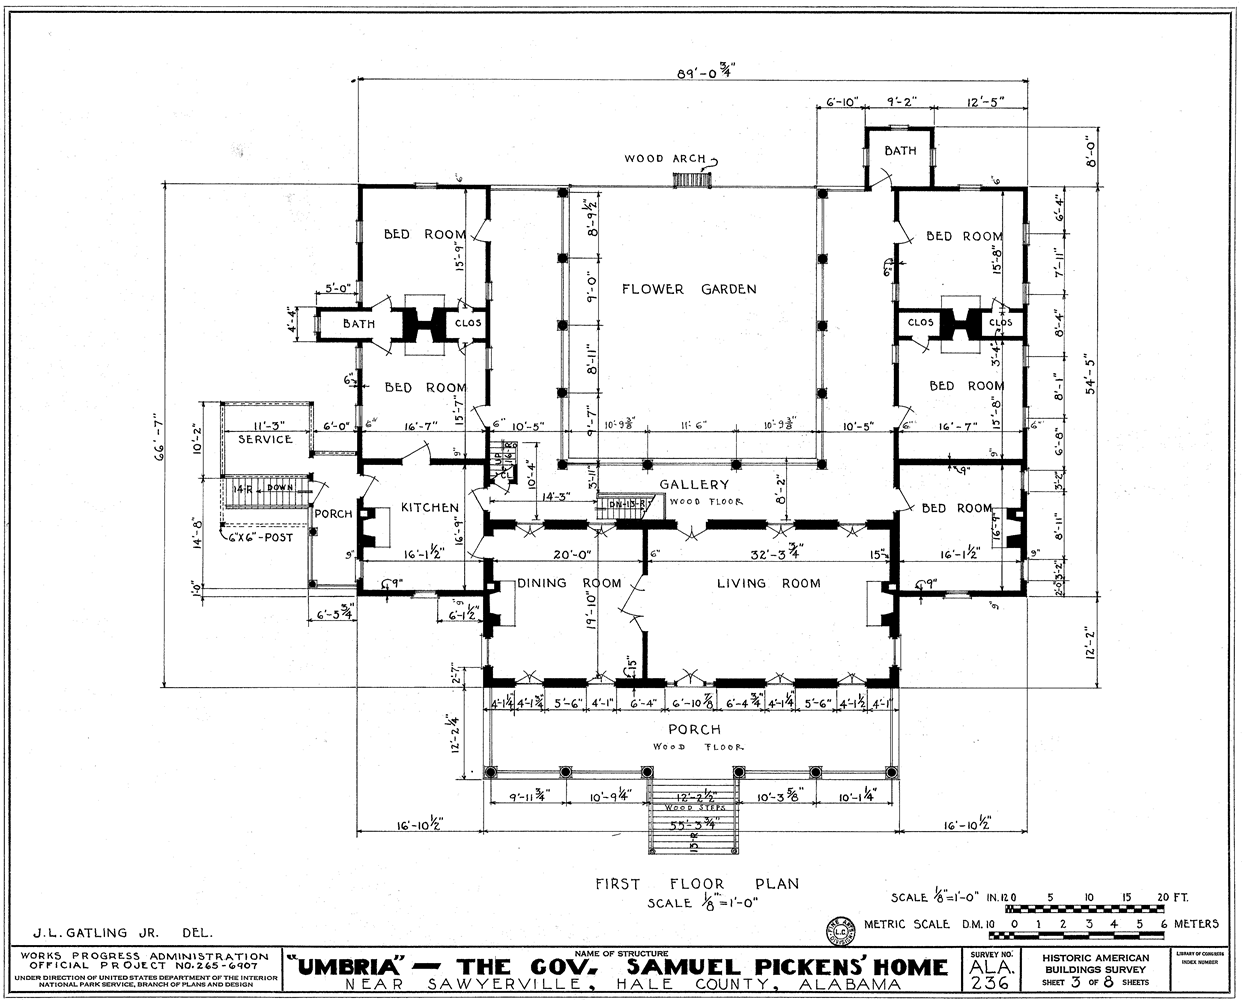 House plans and design architectural house designs floor for Architecture design house plan